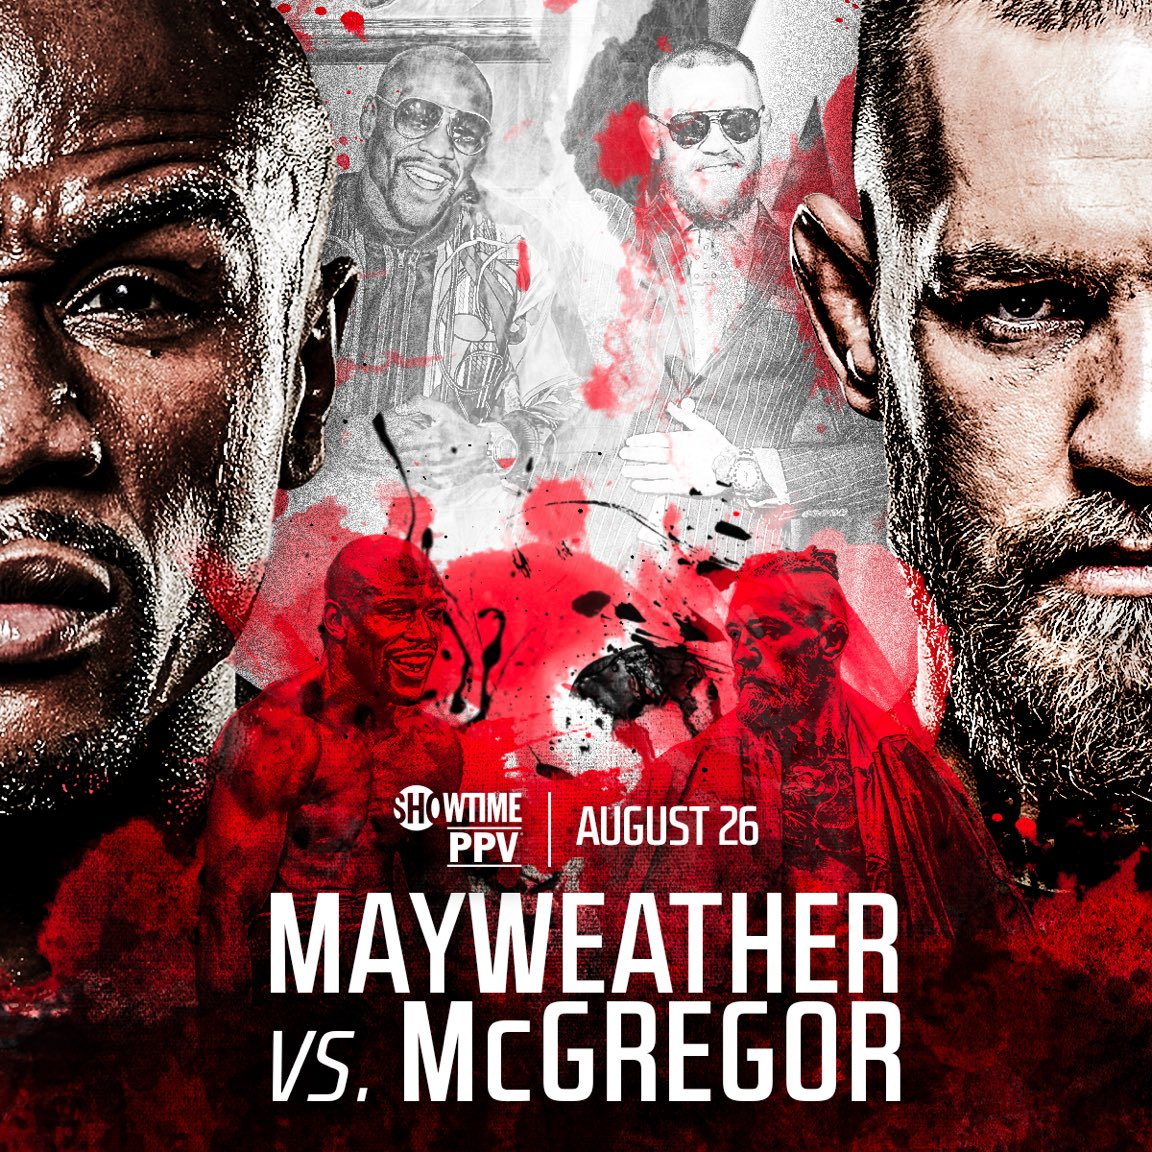 Mayweather vs McGregor Showtime Fight Poster